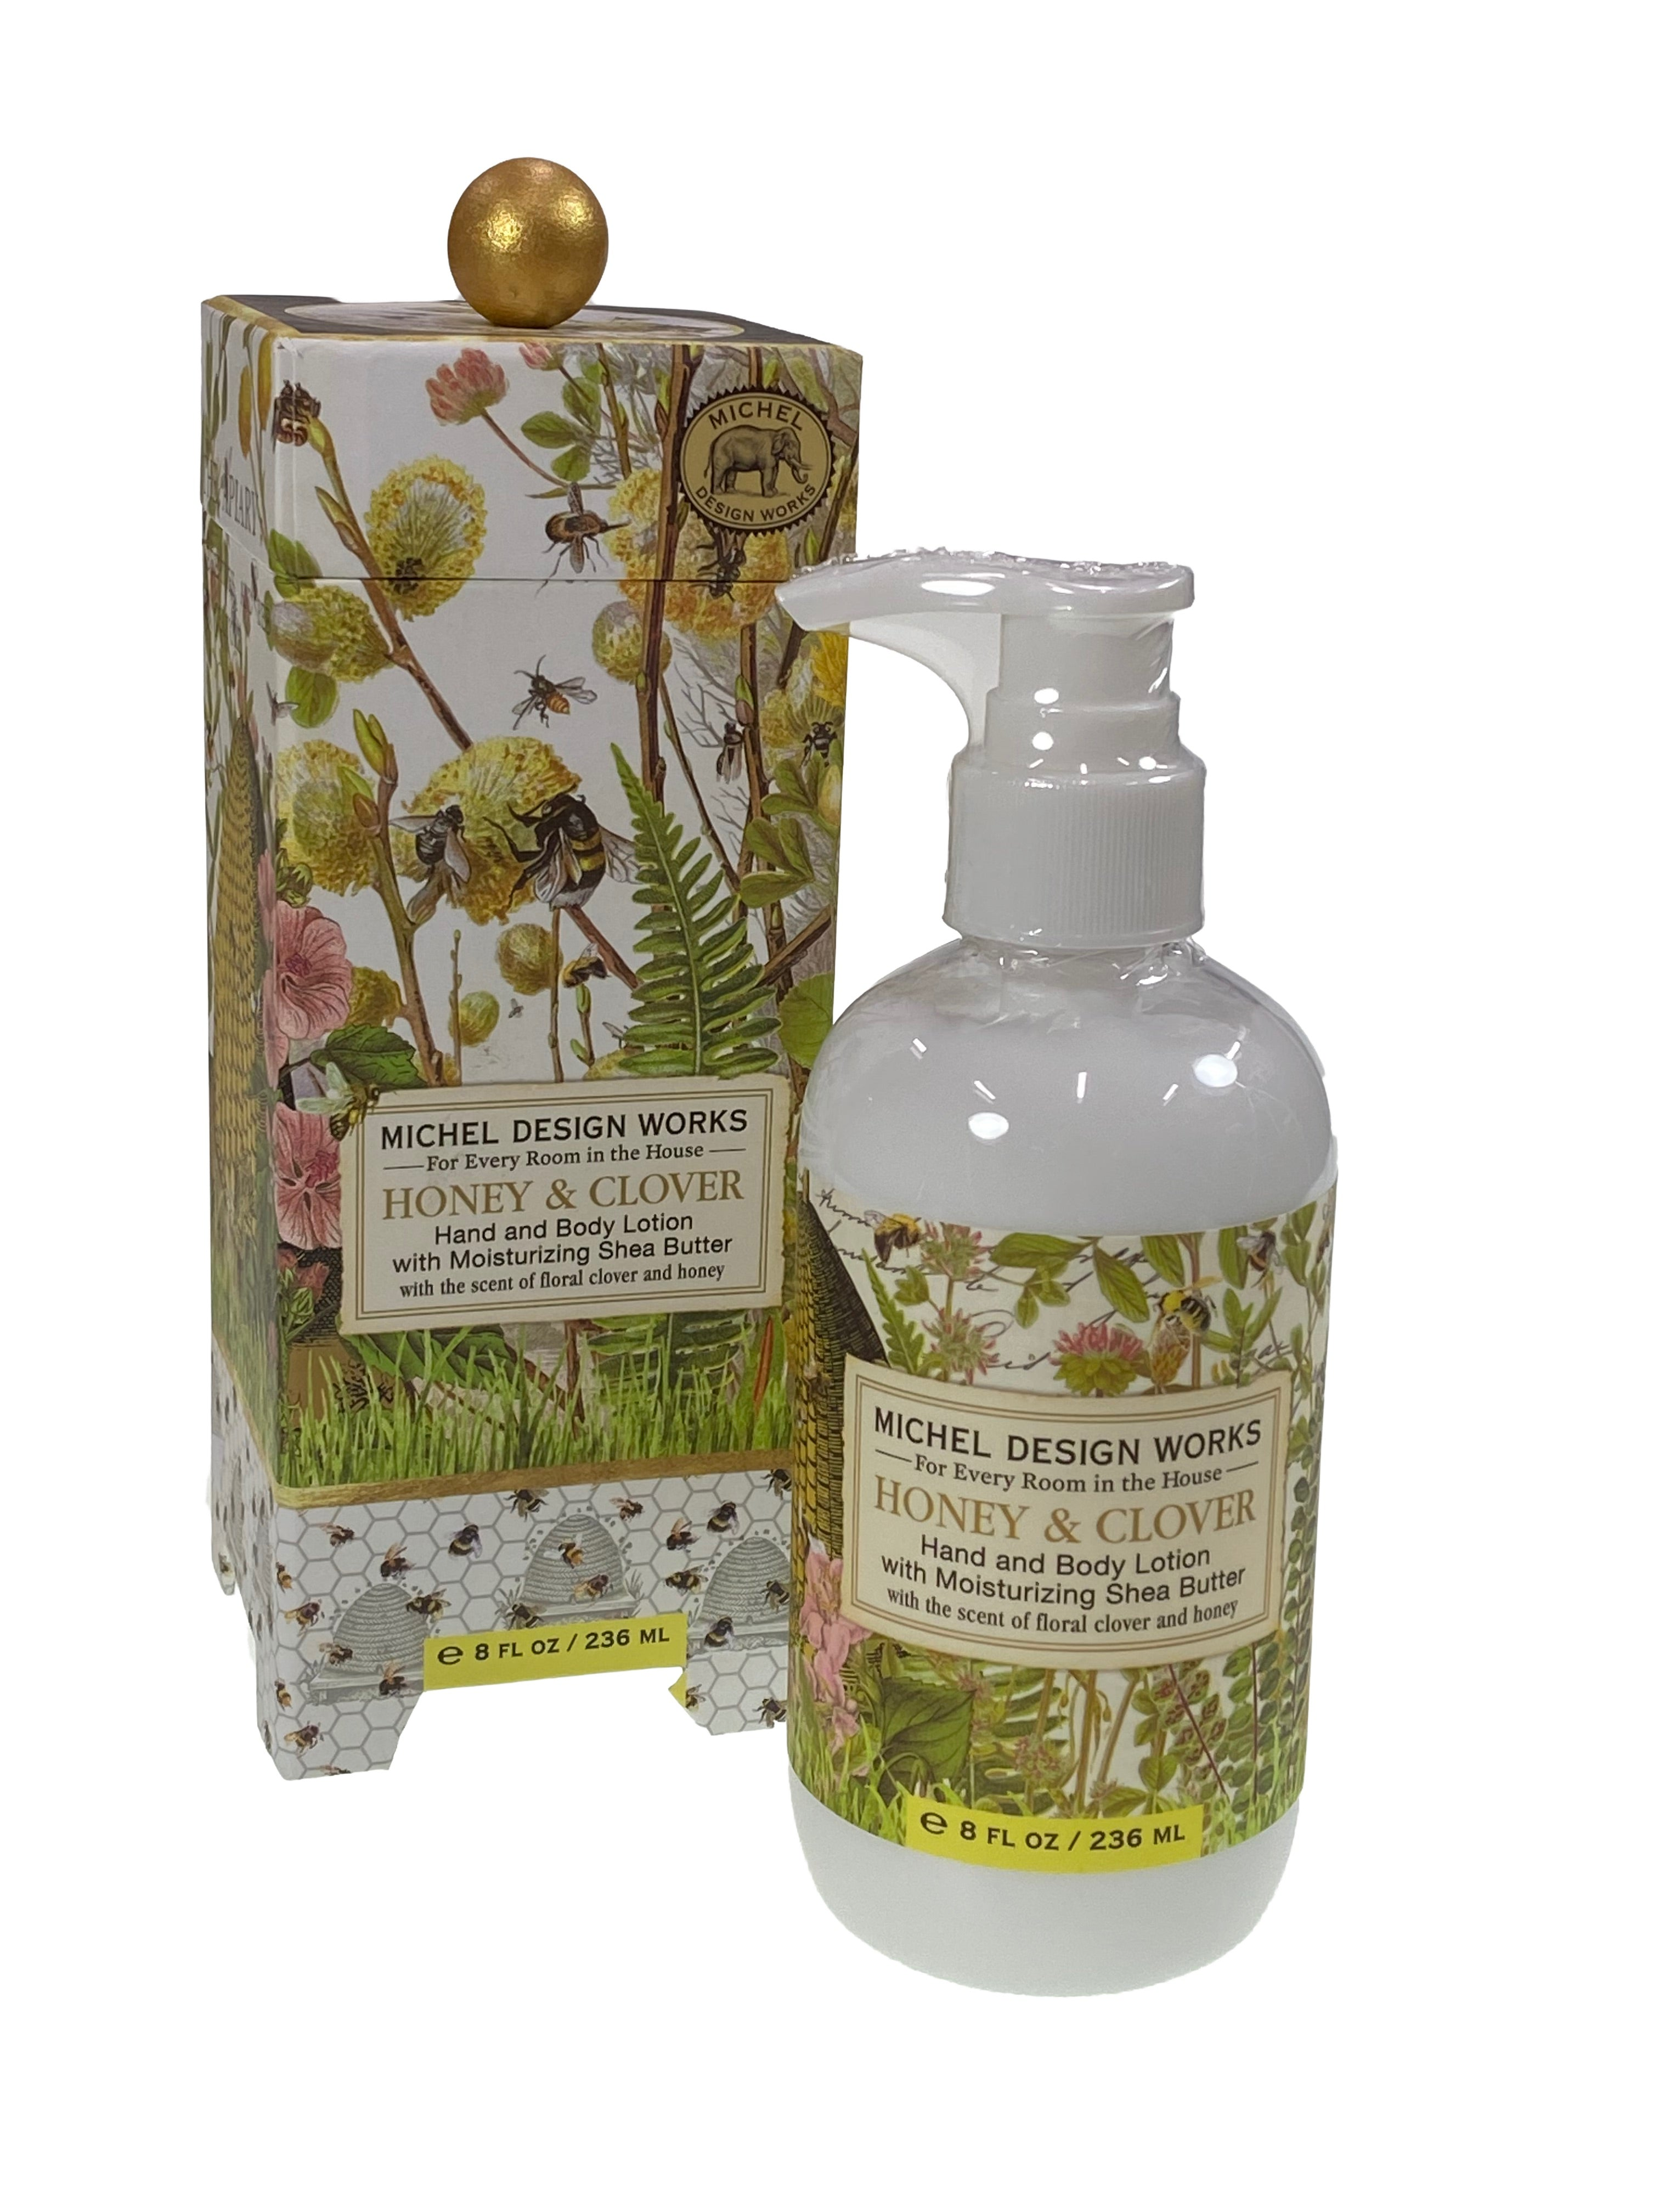 Honey & Clover Hand and Body Lotion with Shea Butter